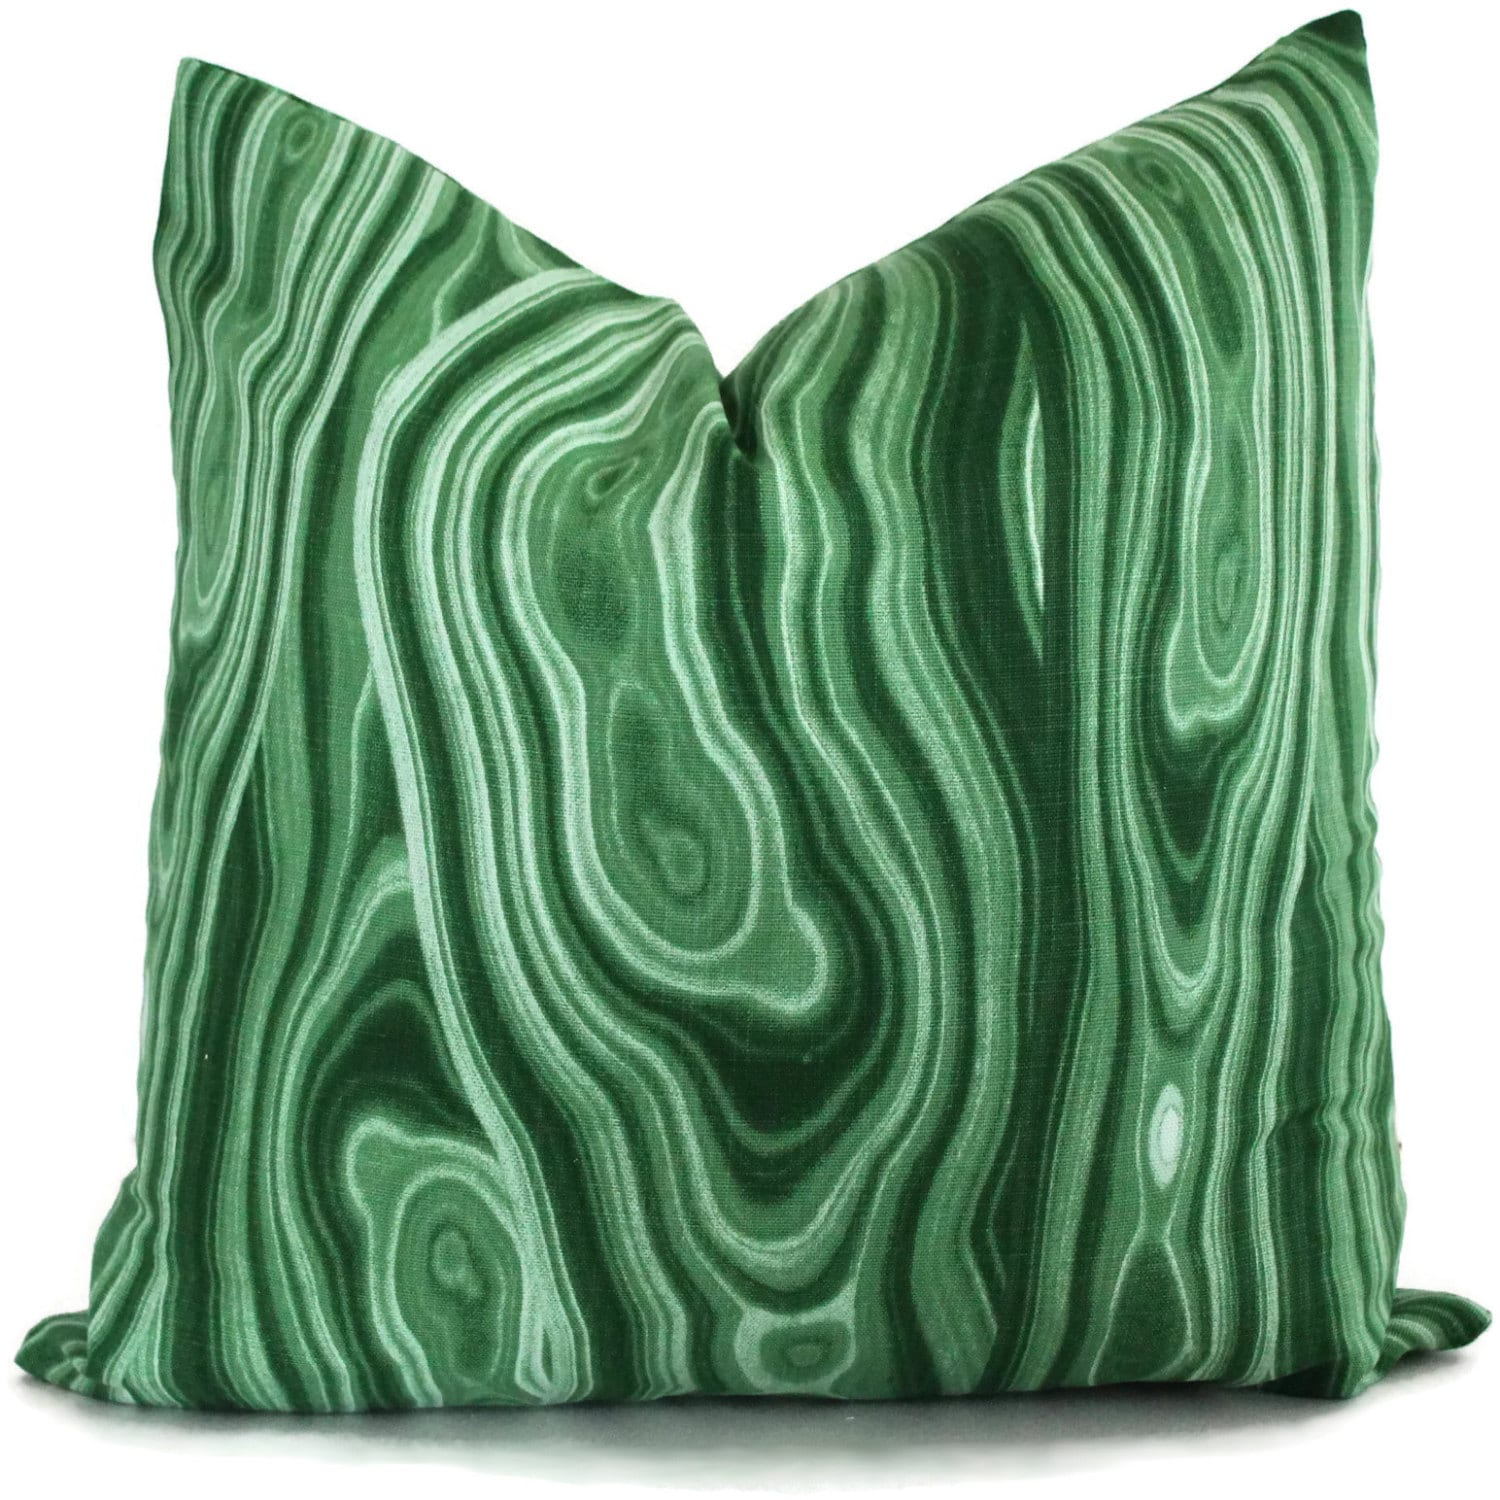 rh covers decorative embroidered hand case cushion cover palm monstera products pillow leaf